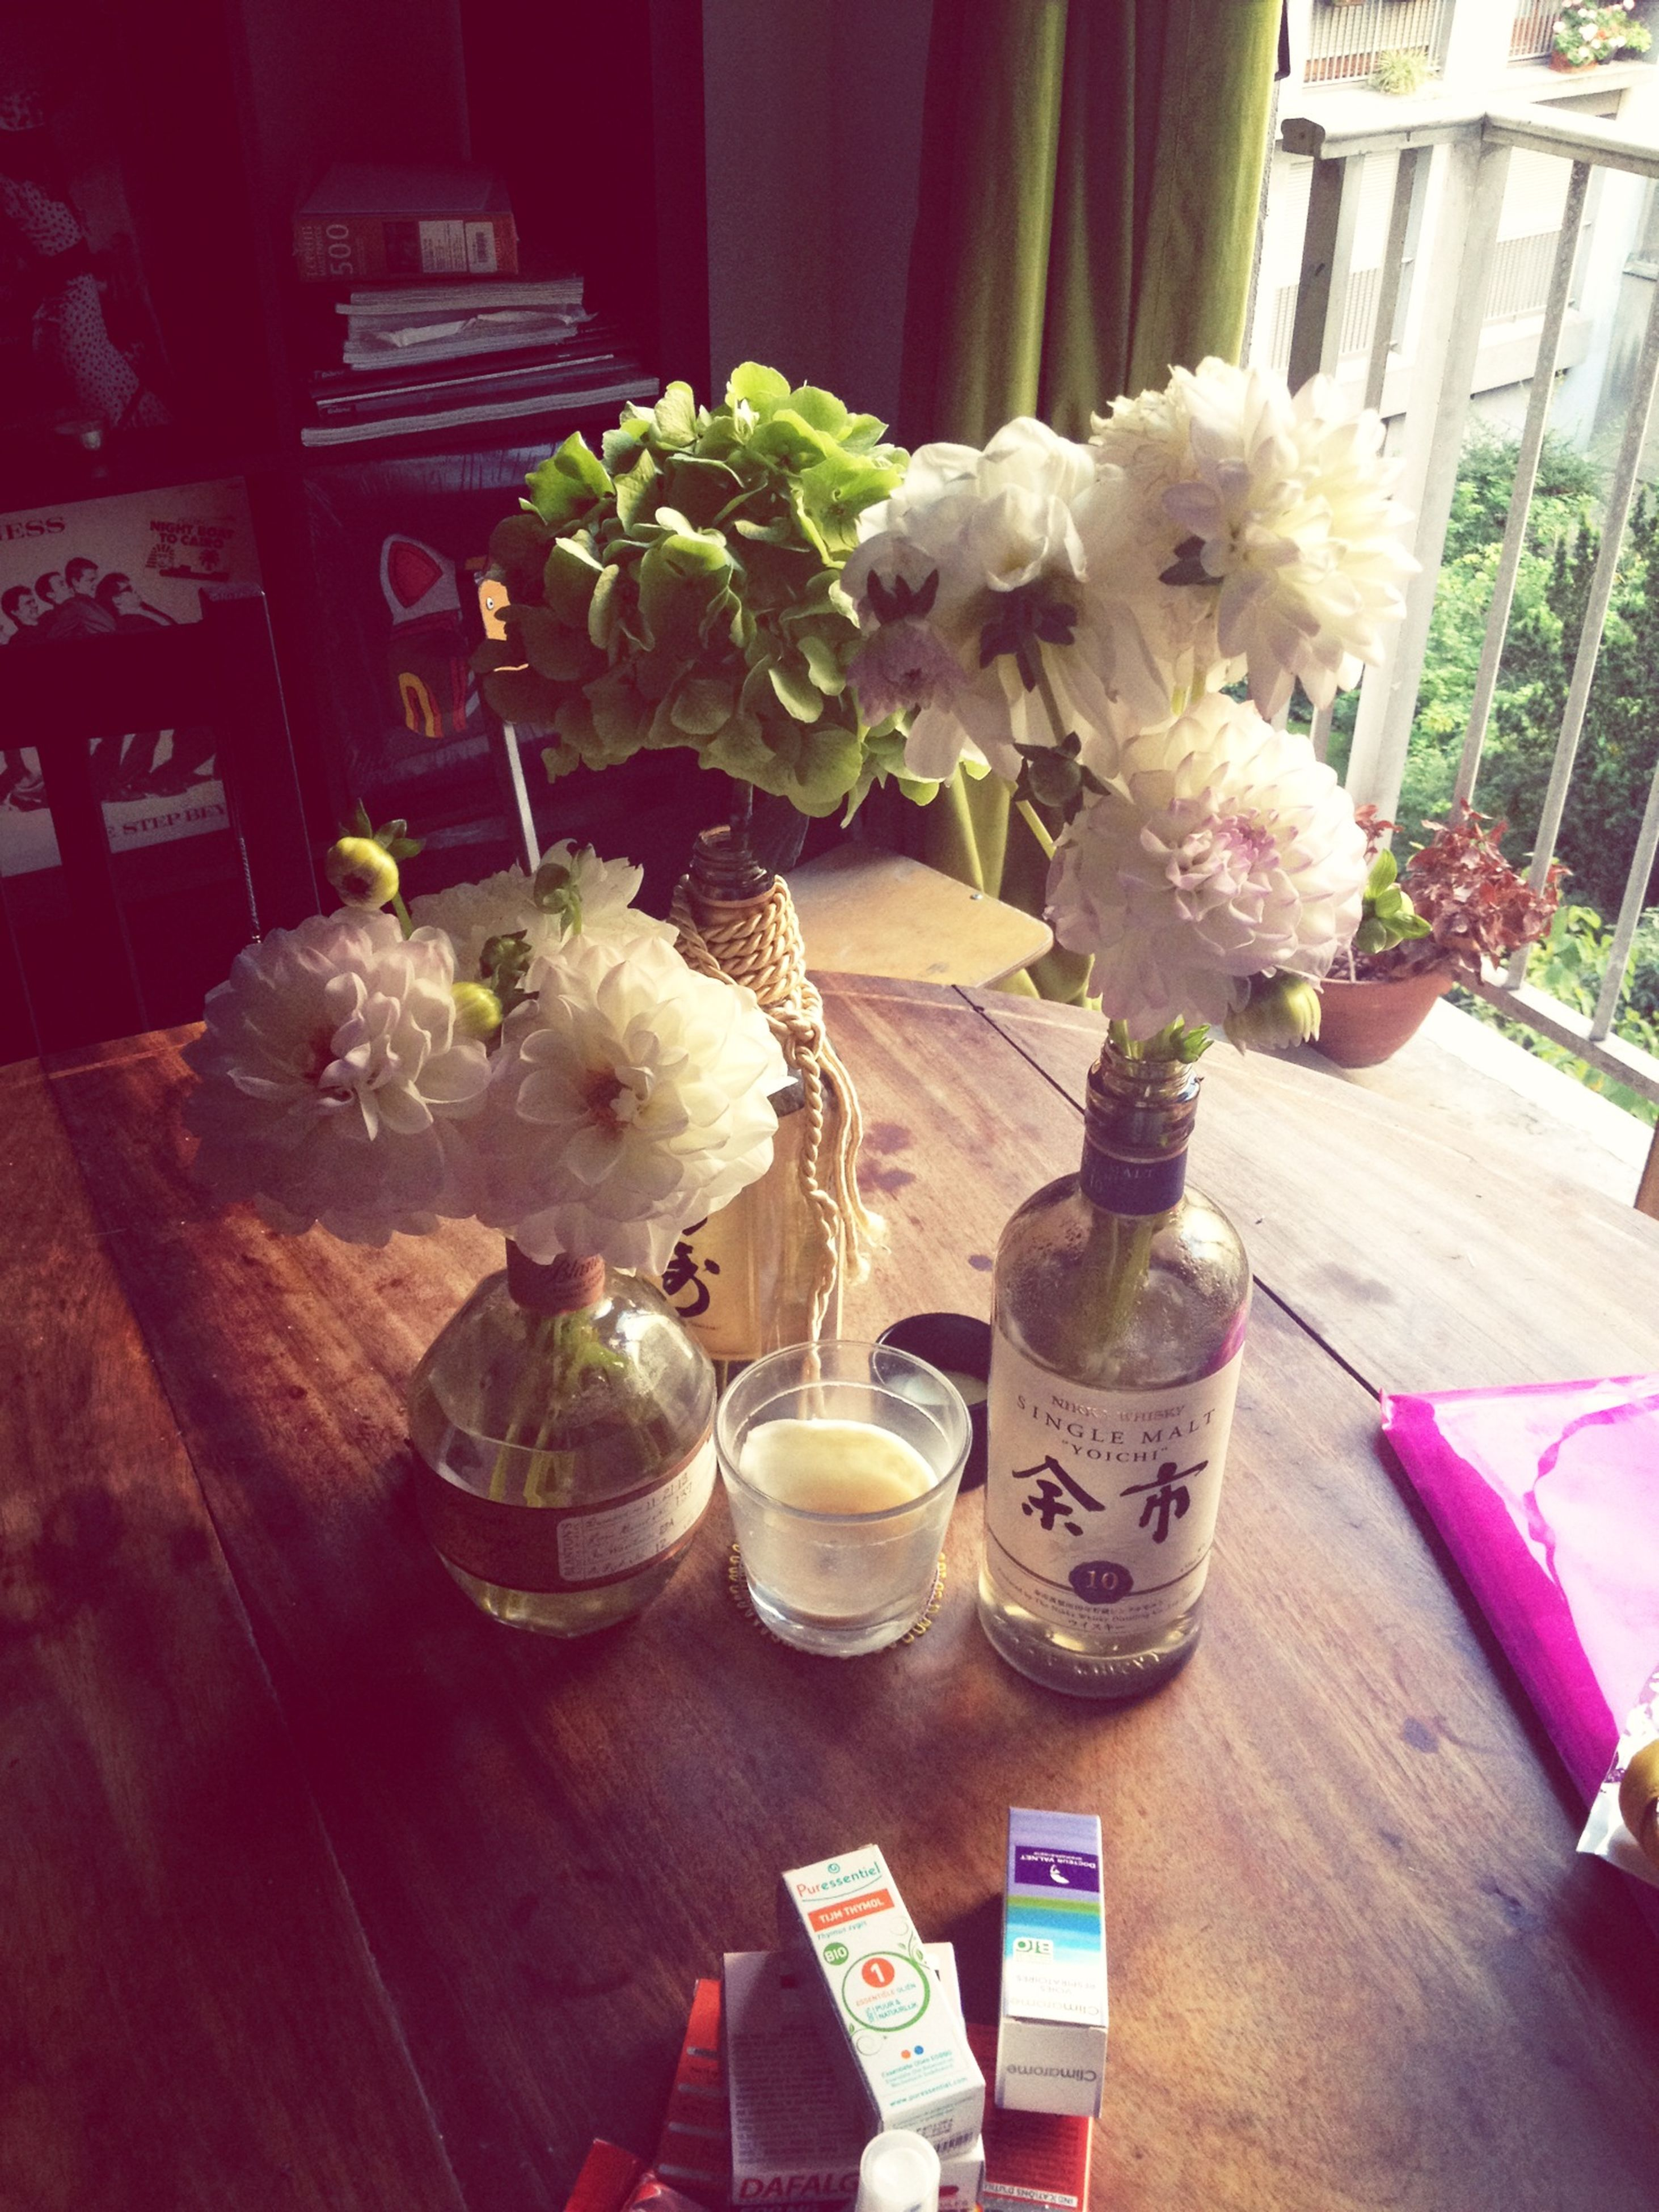 indoors, table, freshness, flower, vase, still life, food and drink, wood - material, glass - material, restaurant, drinking glass, home interior, drink, close-up, potted plant, variation, chair, no people, pink color, arrangement